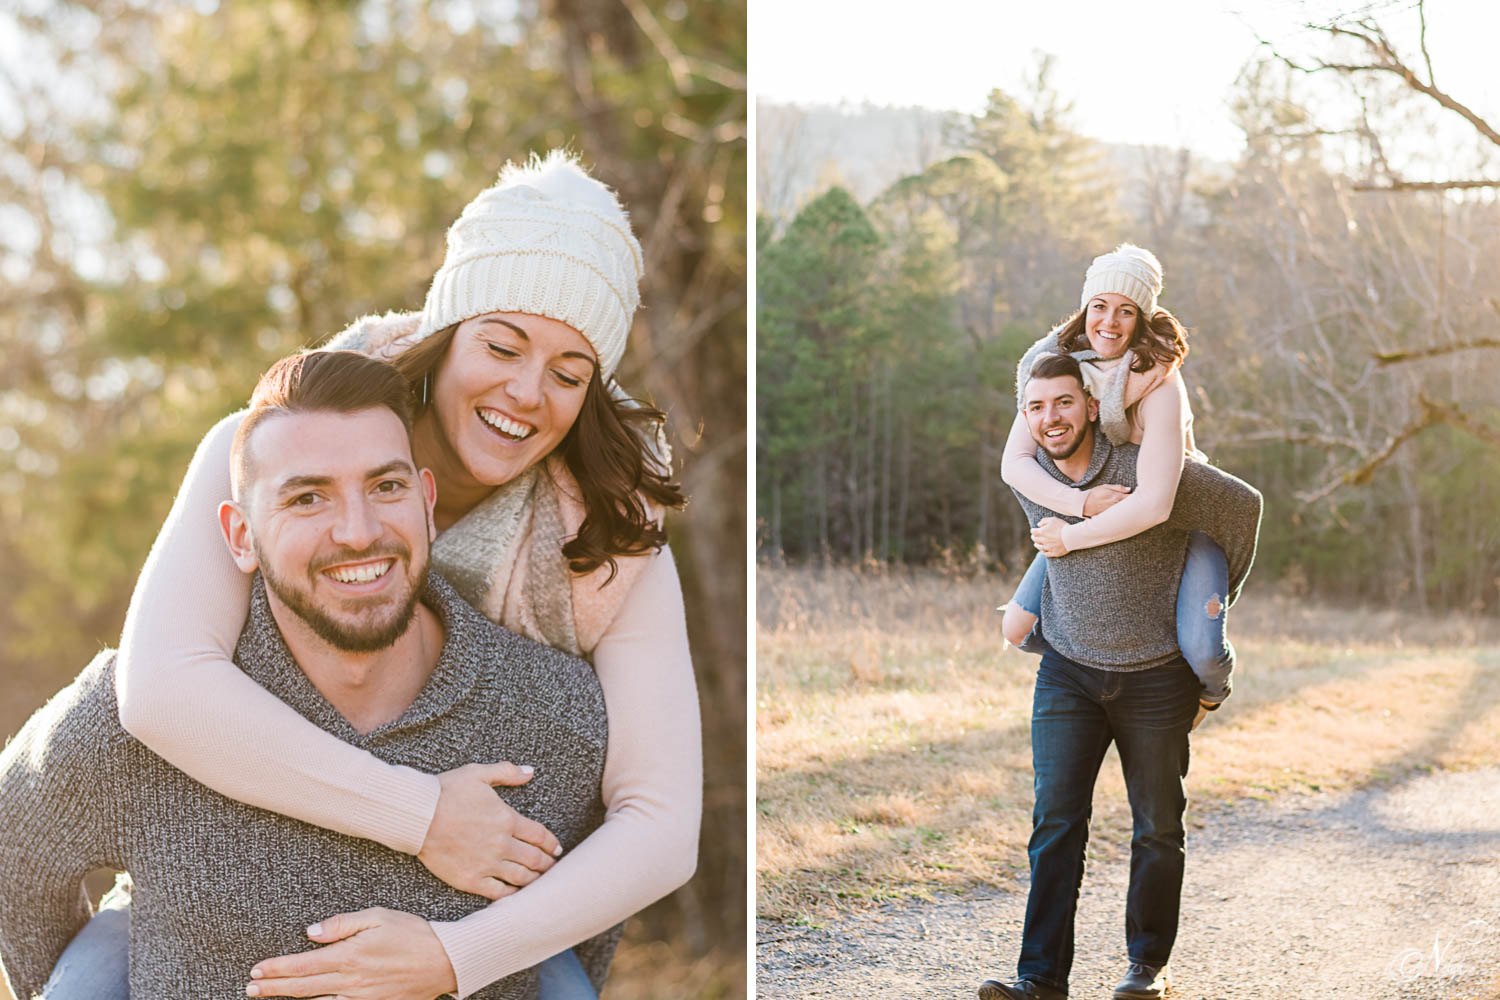 prewedding shoot outside with a guy and girlwearing cute winter sweaters and jeans.